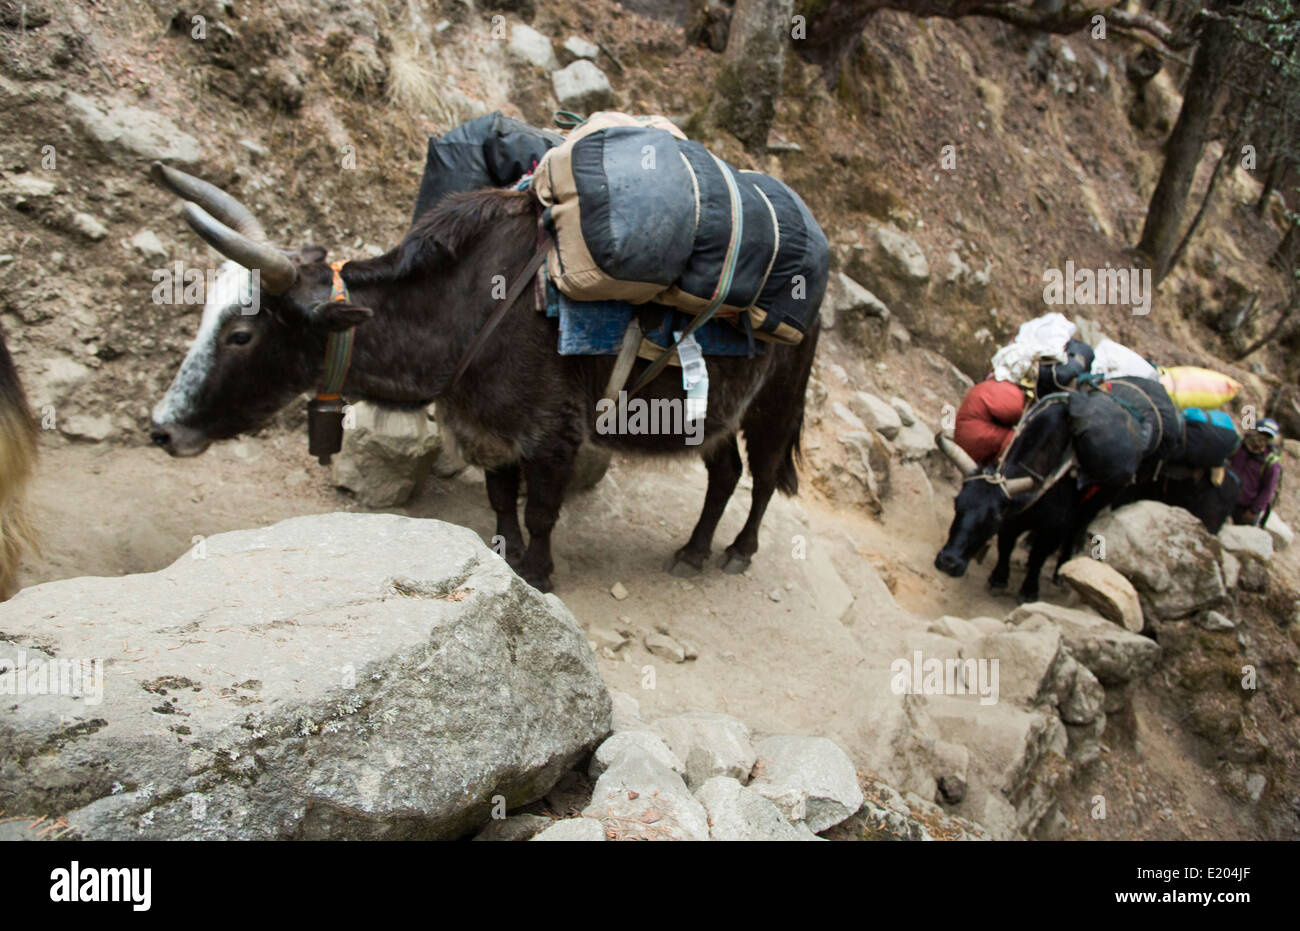 Nepal, a yak carravan carrying a load in Solukhumbu, remote, Mt Everest, Himalayas - Stock Image